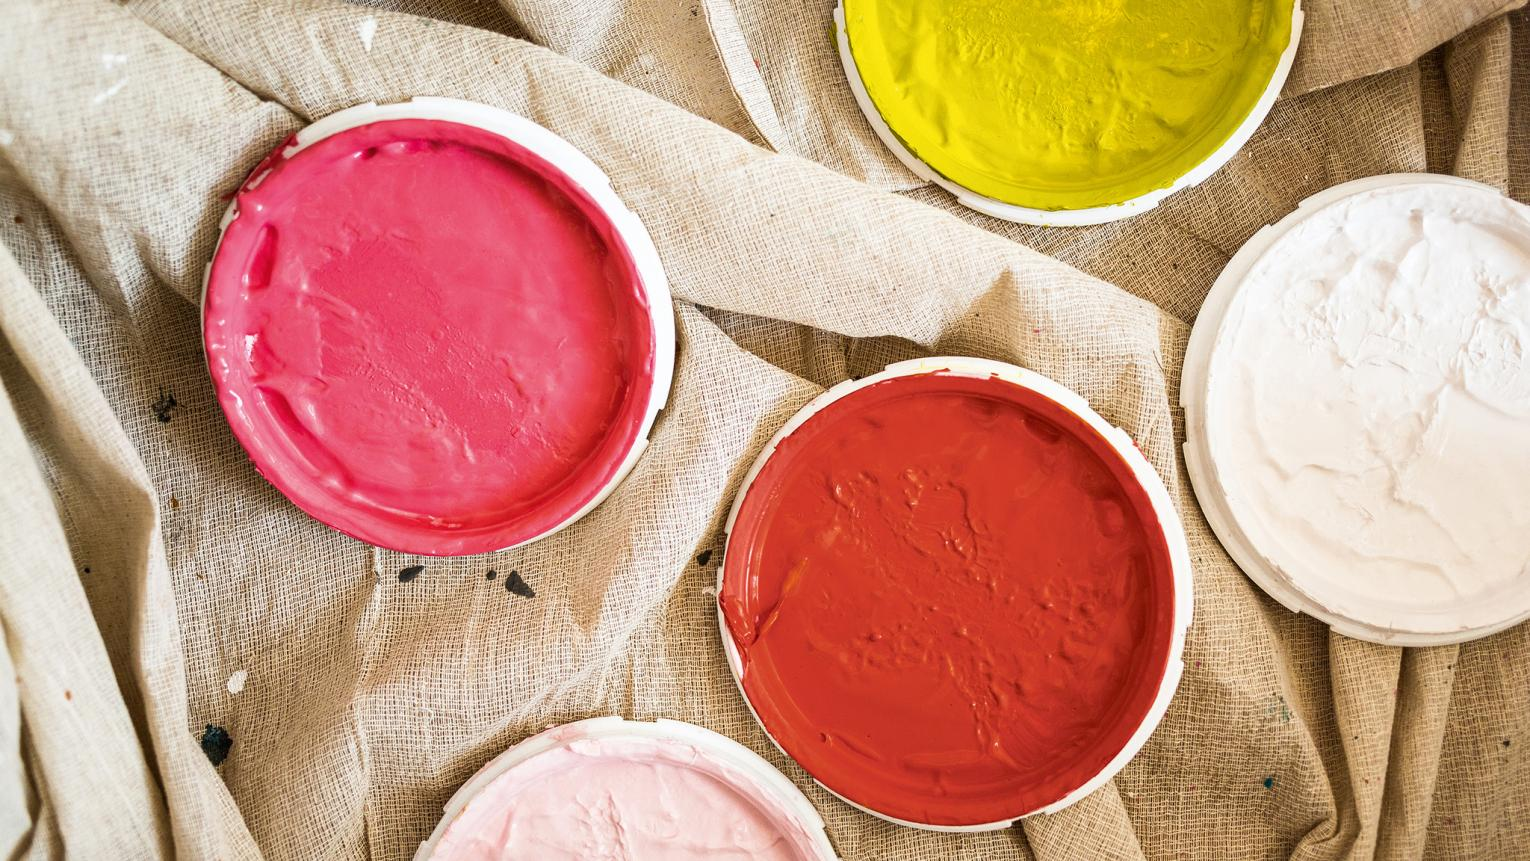 Looking to hire a professional painter? Before you do, read our expert advice on finding the right person for the job.